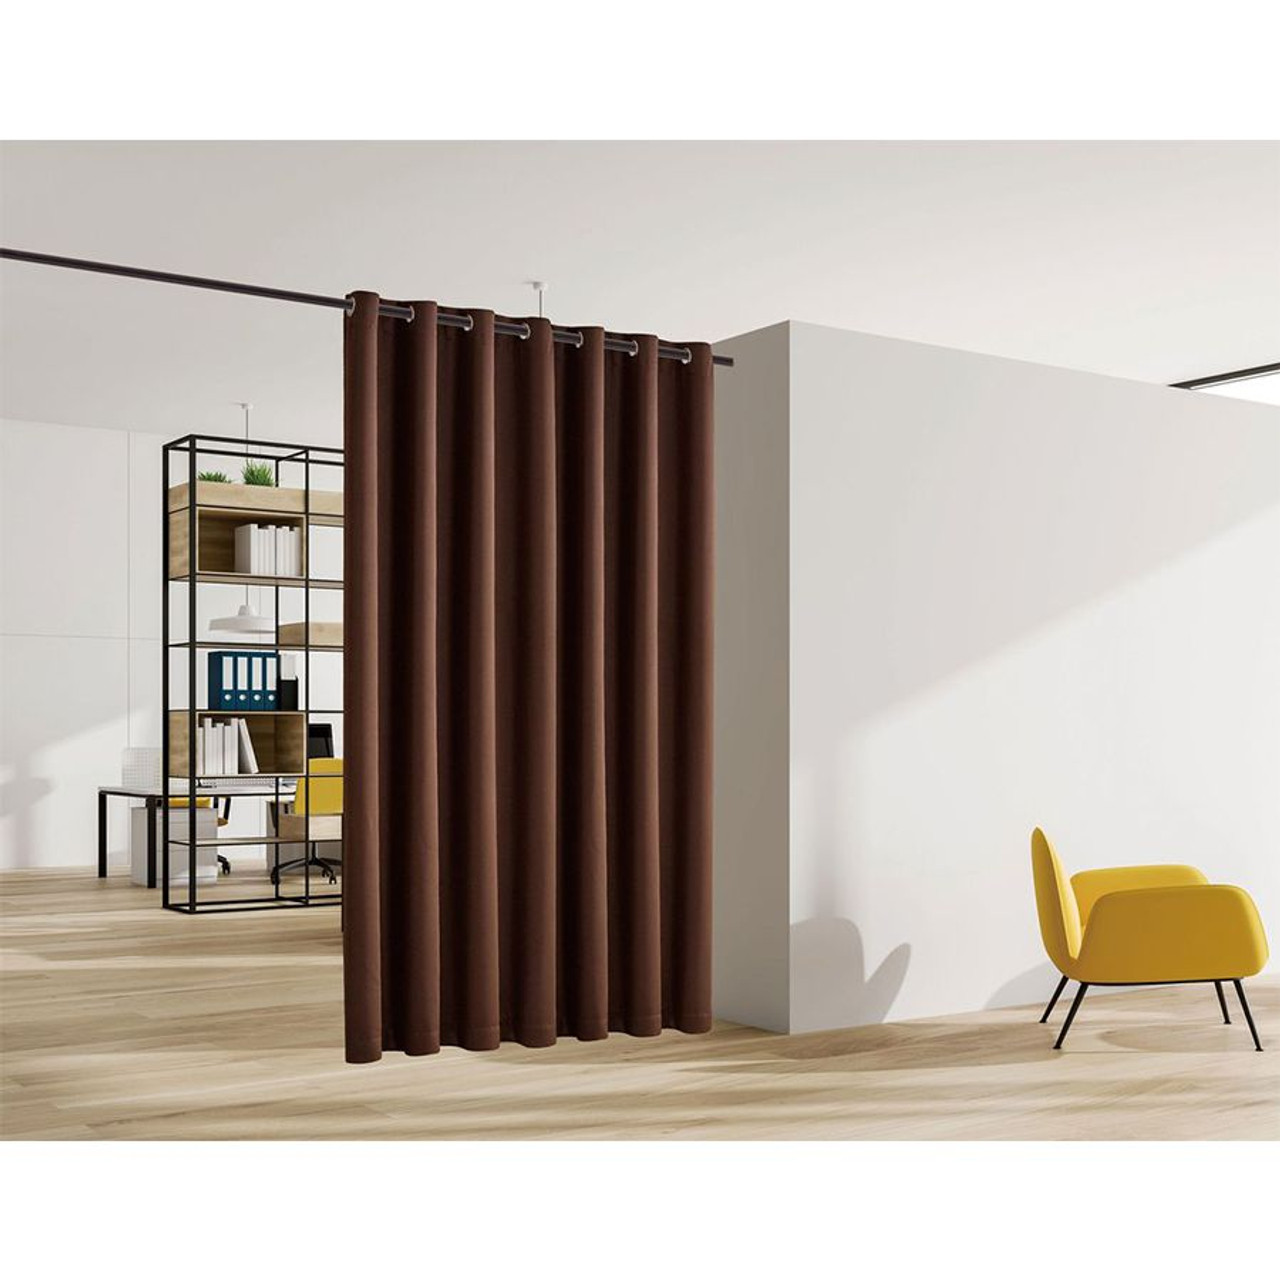 Blackout Room Divider Curtain Panel Thermal Insulated Brown Color